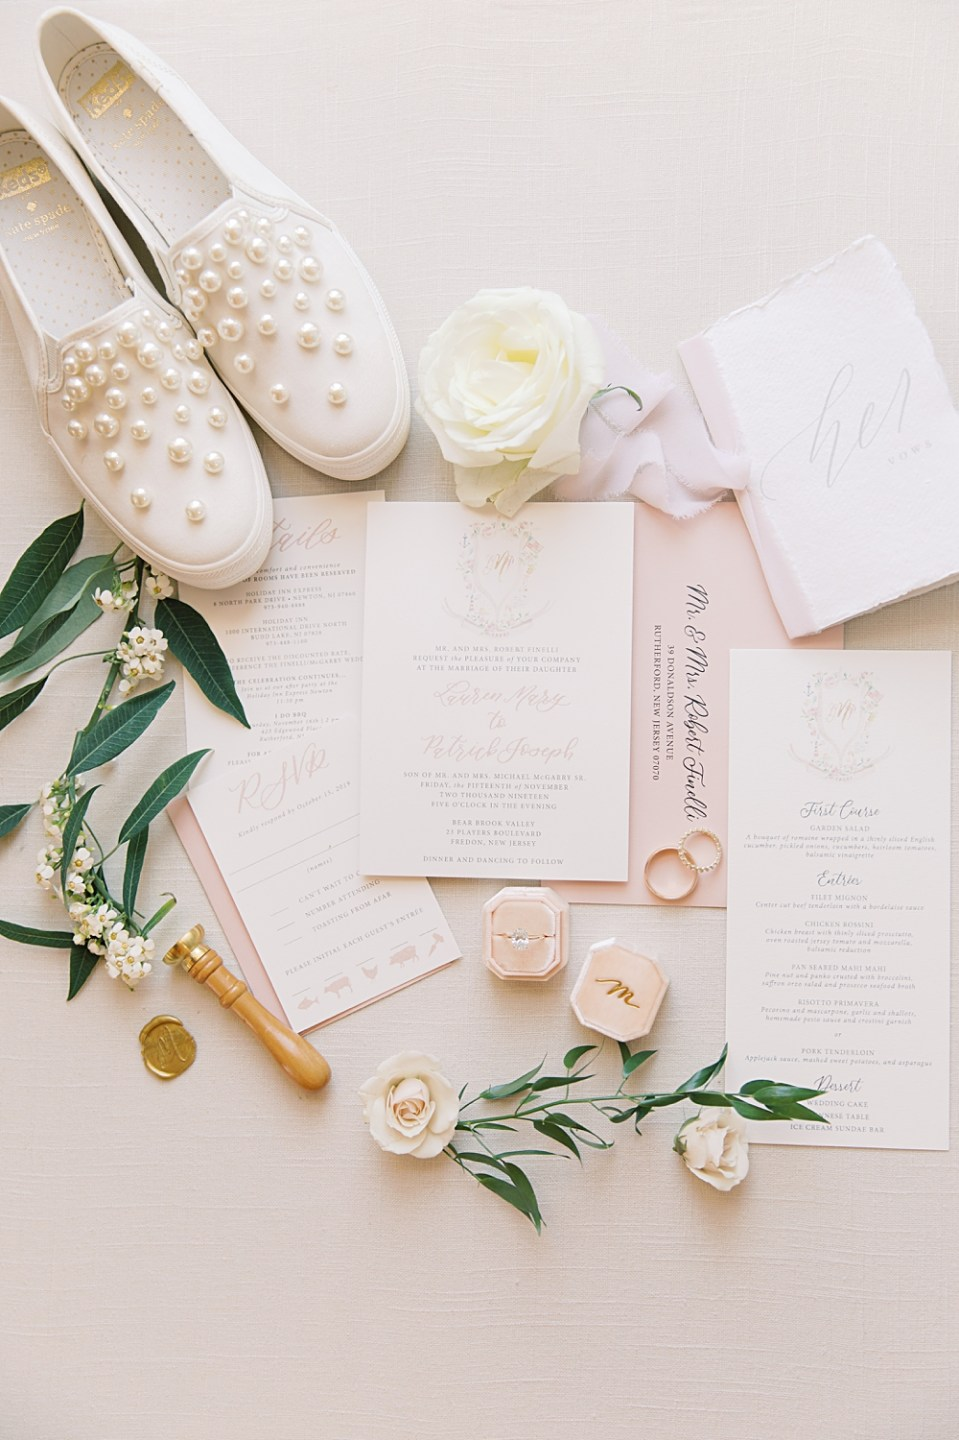 Lace and Belle invitation suite | New Jersey Wedding Photographer Sarah Canning